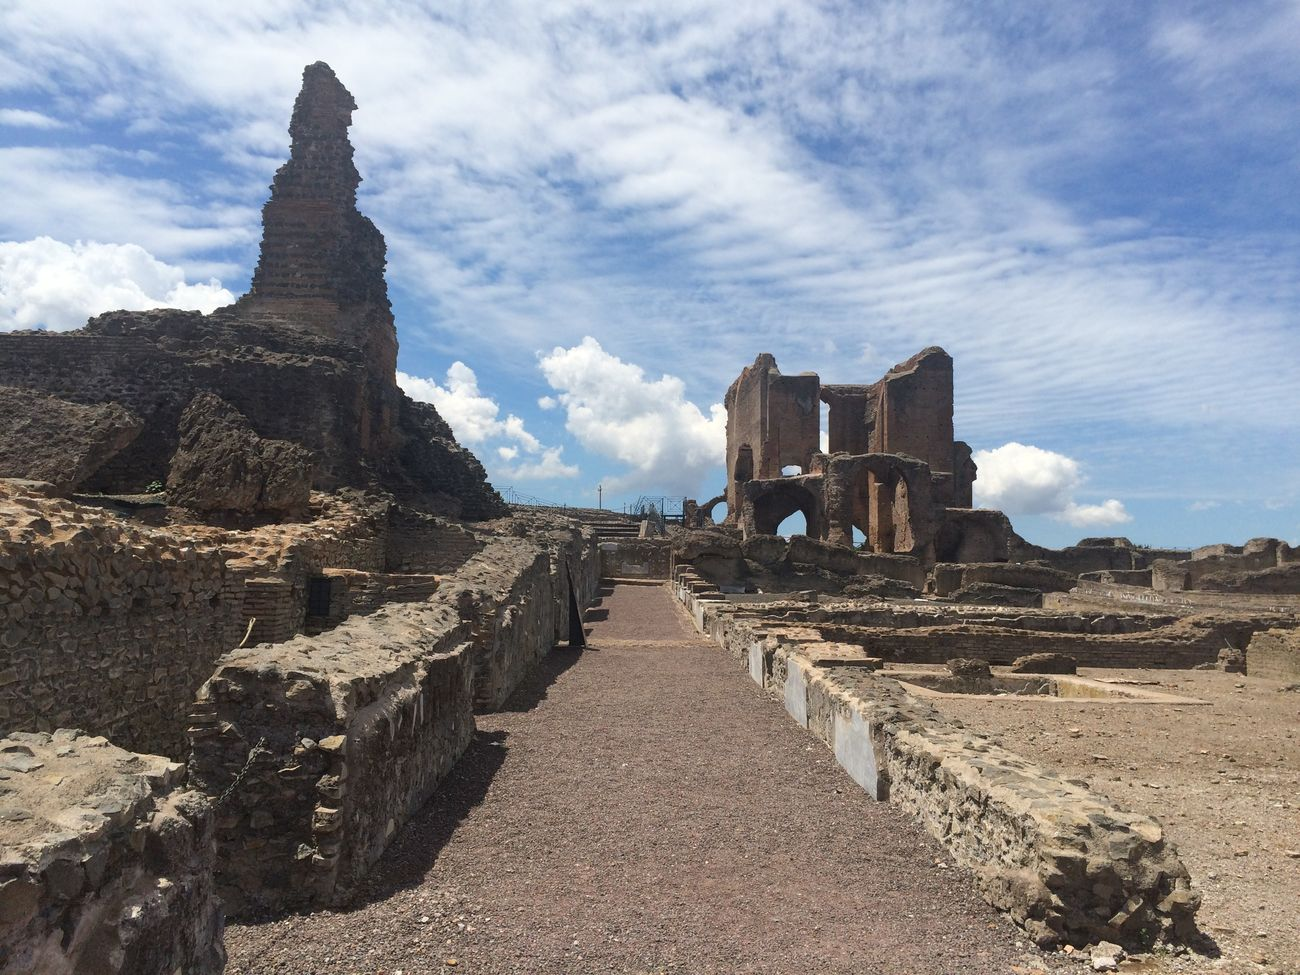 Historical Sights View Appia Antica Rome Old Buildings Architecture Historical Building Villa Dei Quintili Discovering Great Works Roma